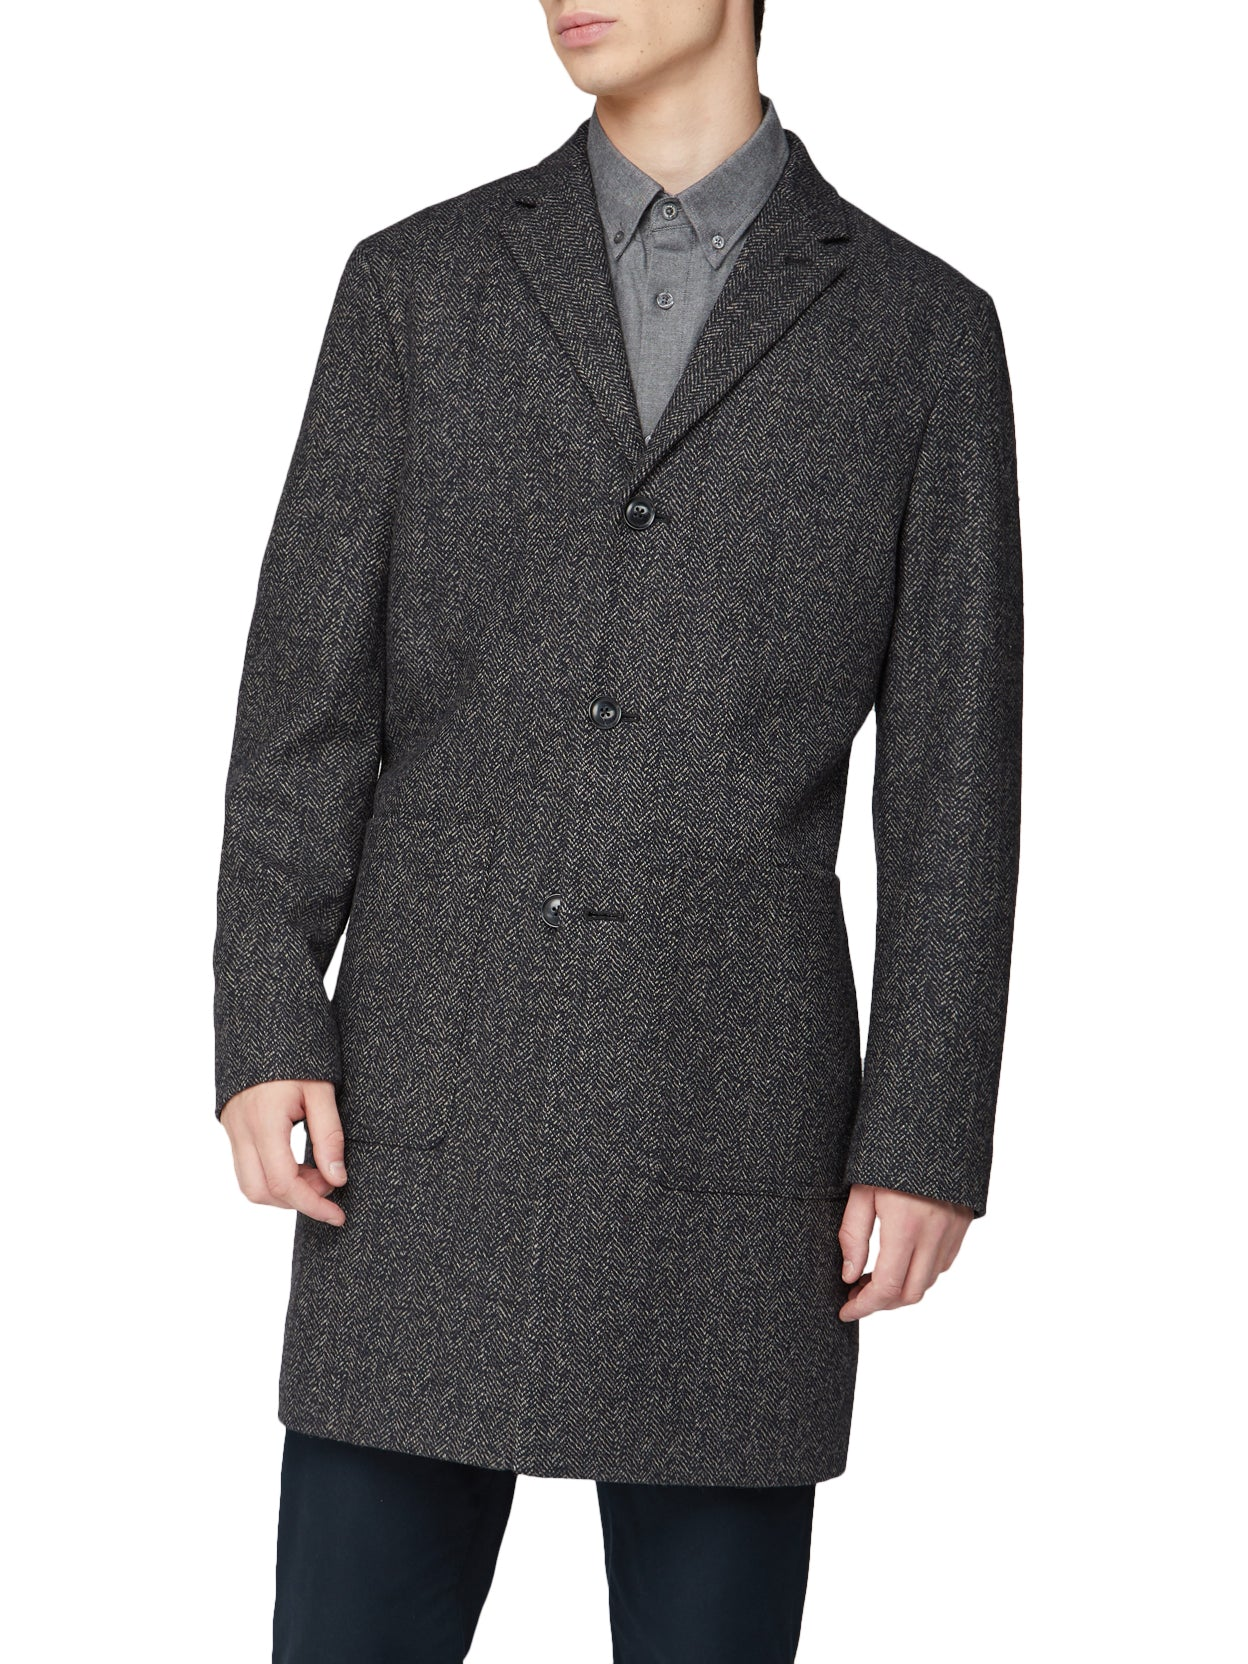 Herringbone Overcoat - Coffee